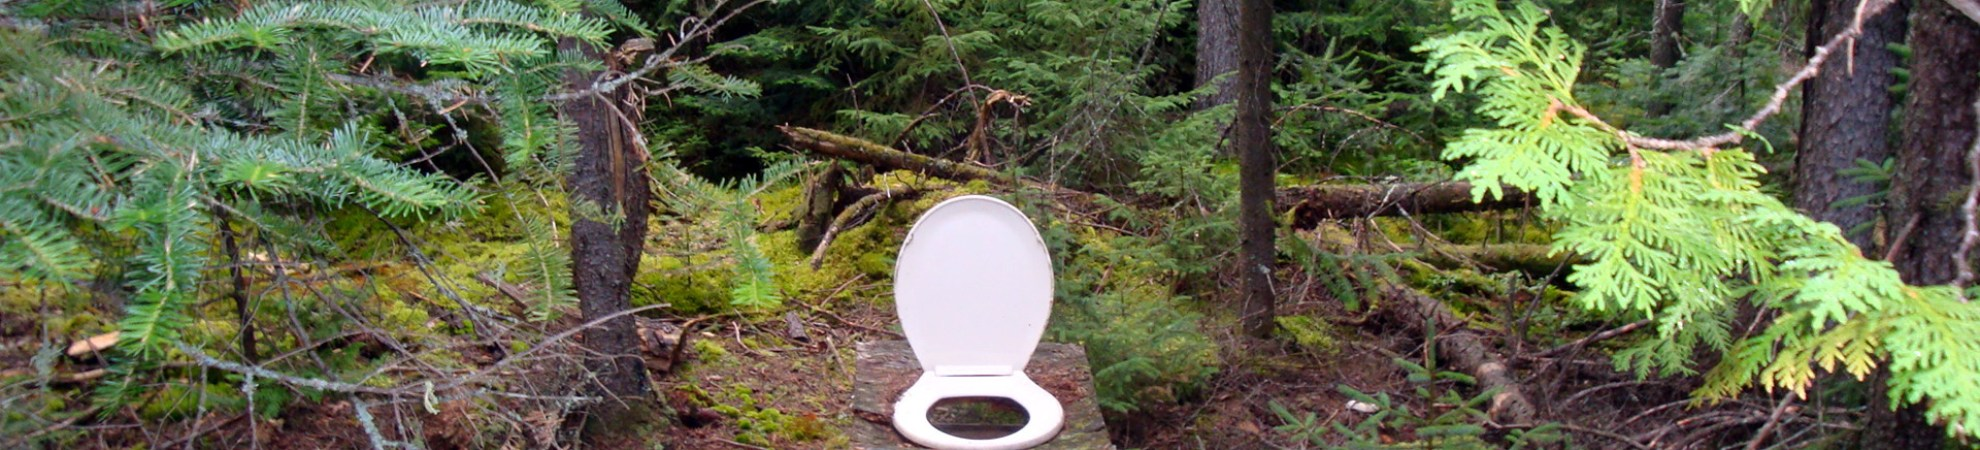 Camping outdoor toilet